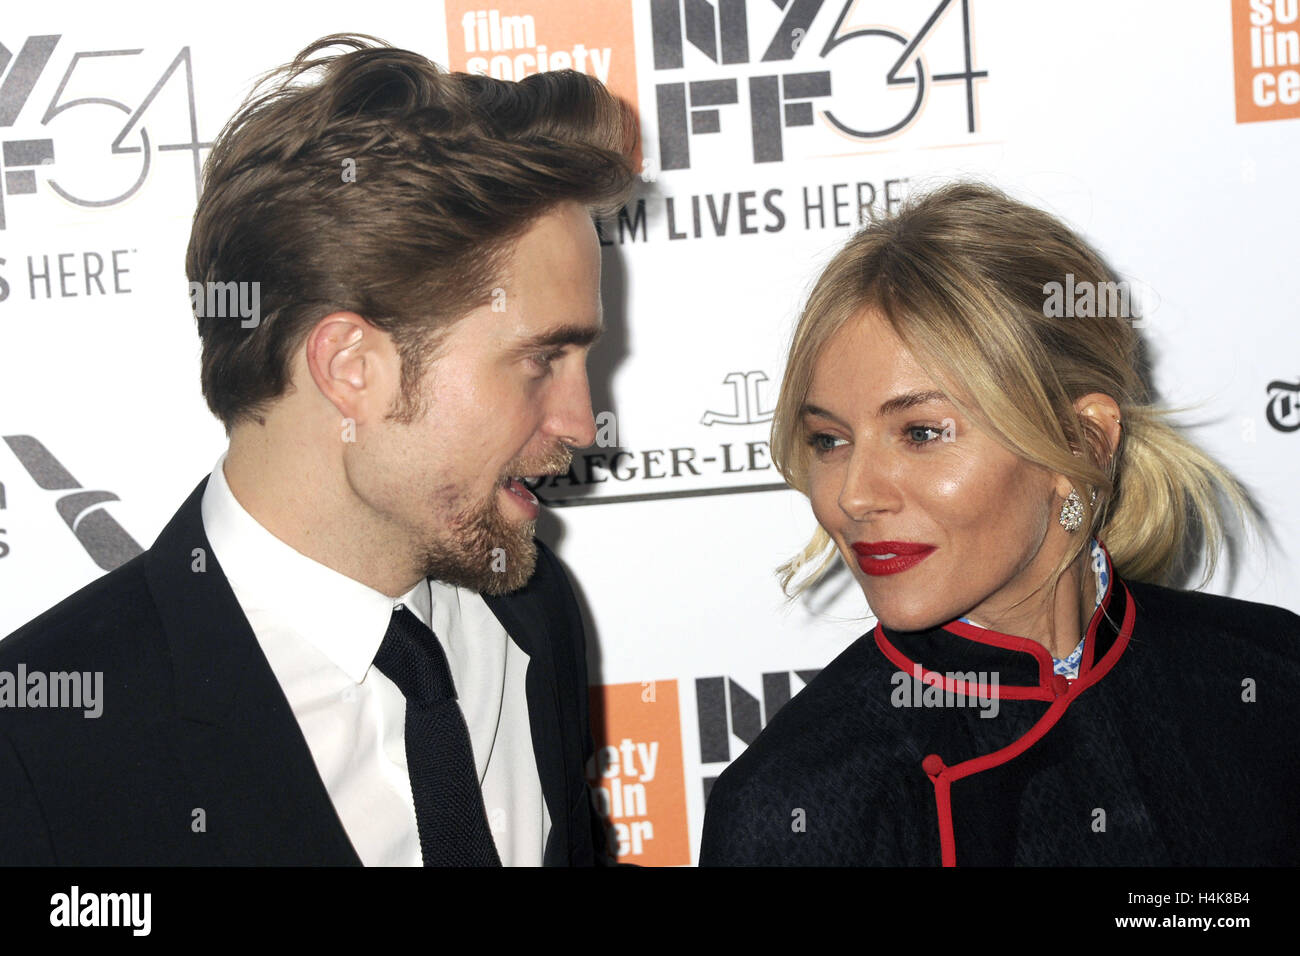 New York City. 15. Oktober 2016. Robert Pattinson und Sienna Miller besuchen Sie 'The Lost City of Z' Closing Stockbild